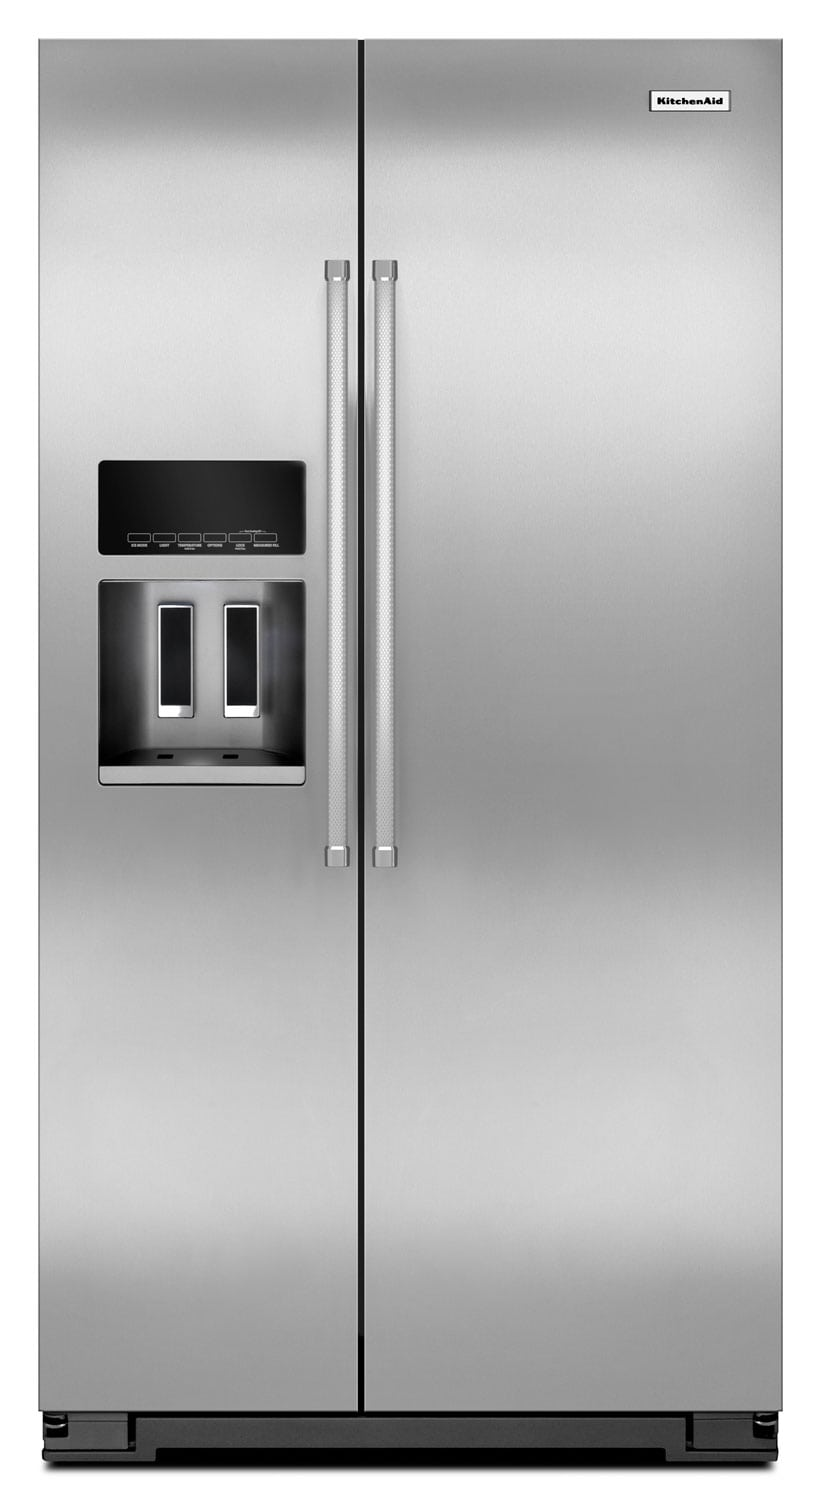 Refrigerators and Freezers - KitchenAid 19.8 Cu. Ft. Side-by-Side Refrigerator - Stainless Steel